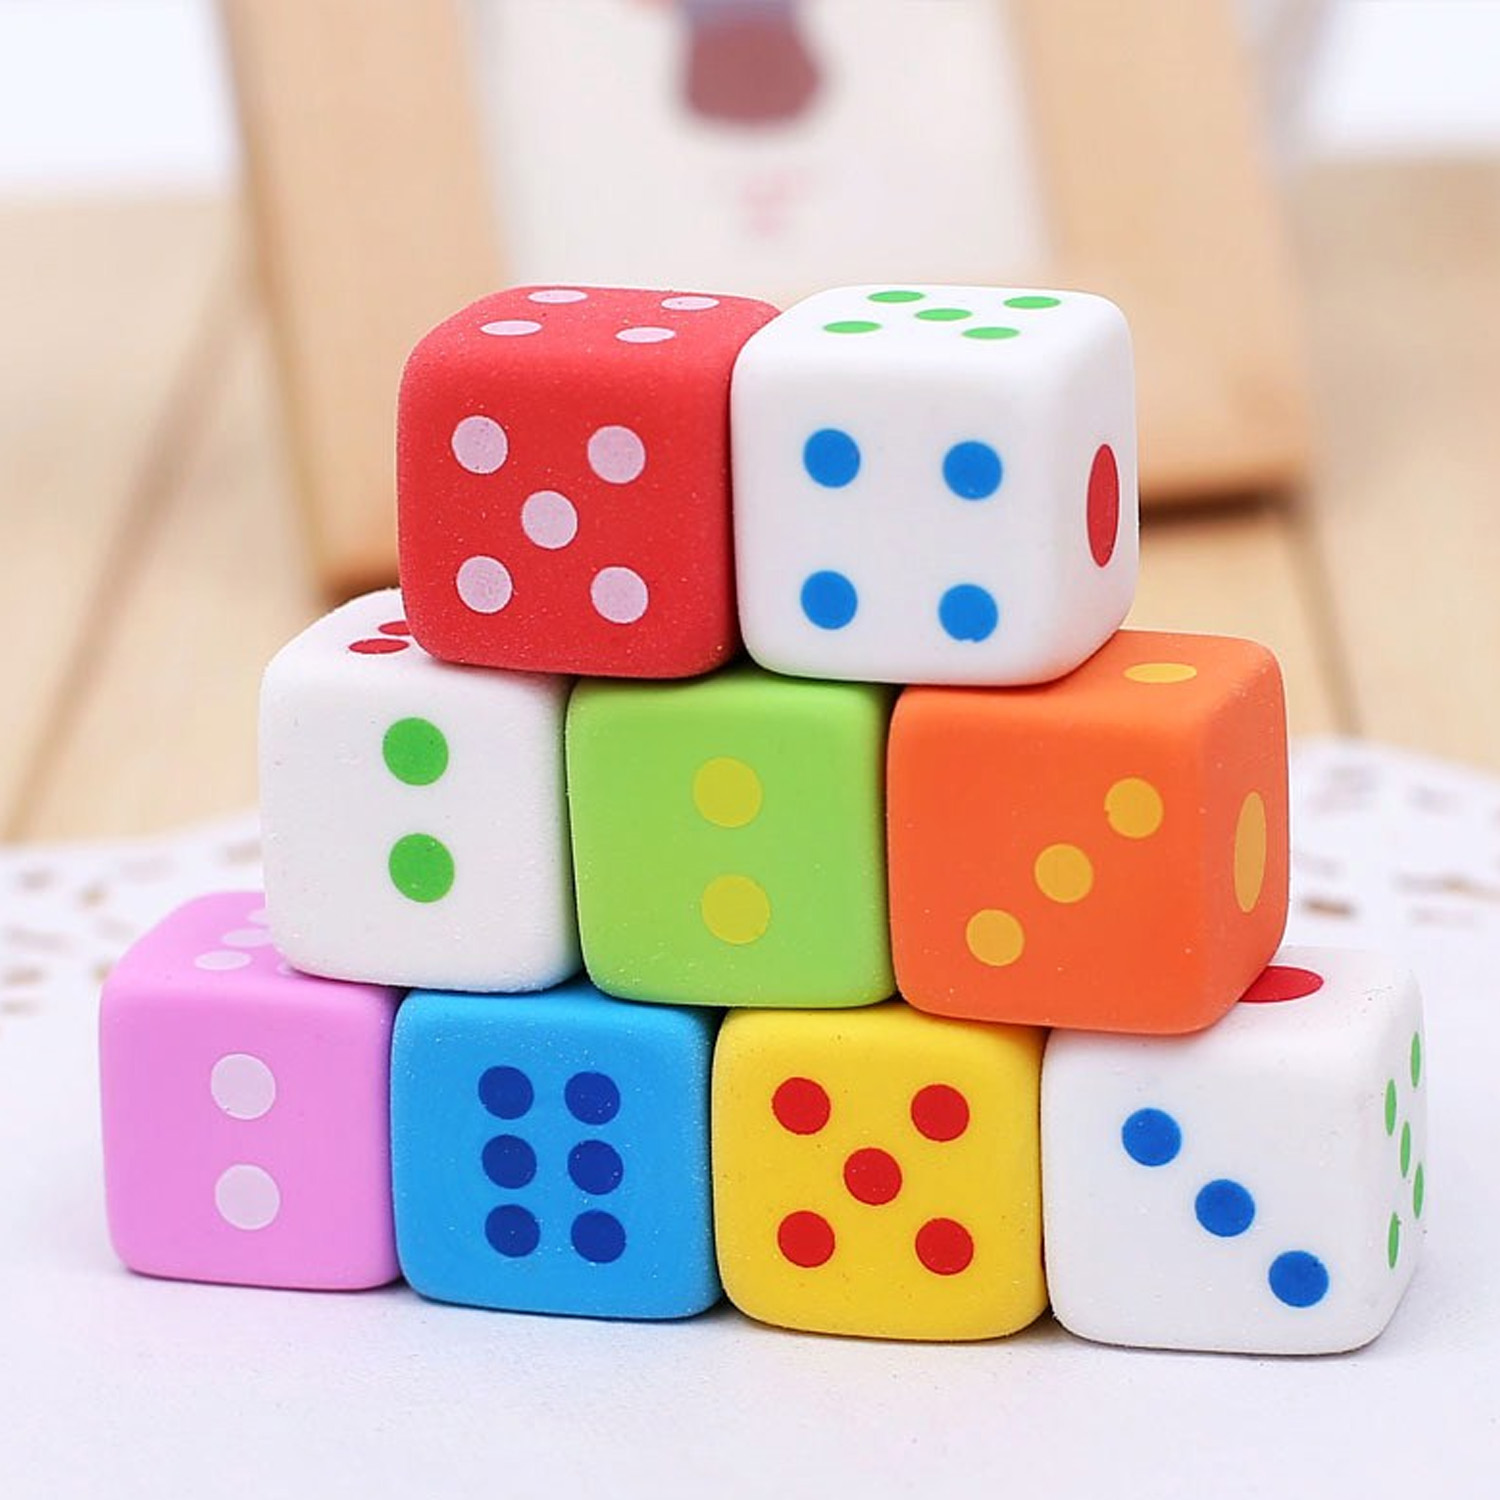 12pcs New Creative Kawaii Cute 3D Dice Shaped Pencil Erasers Toys School Office Stationery Supplies For Kids Children Drawing